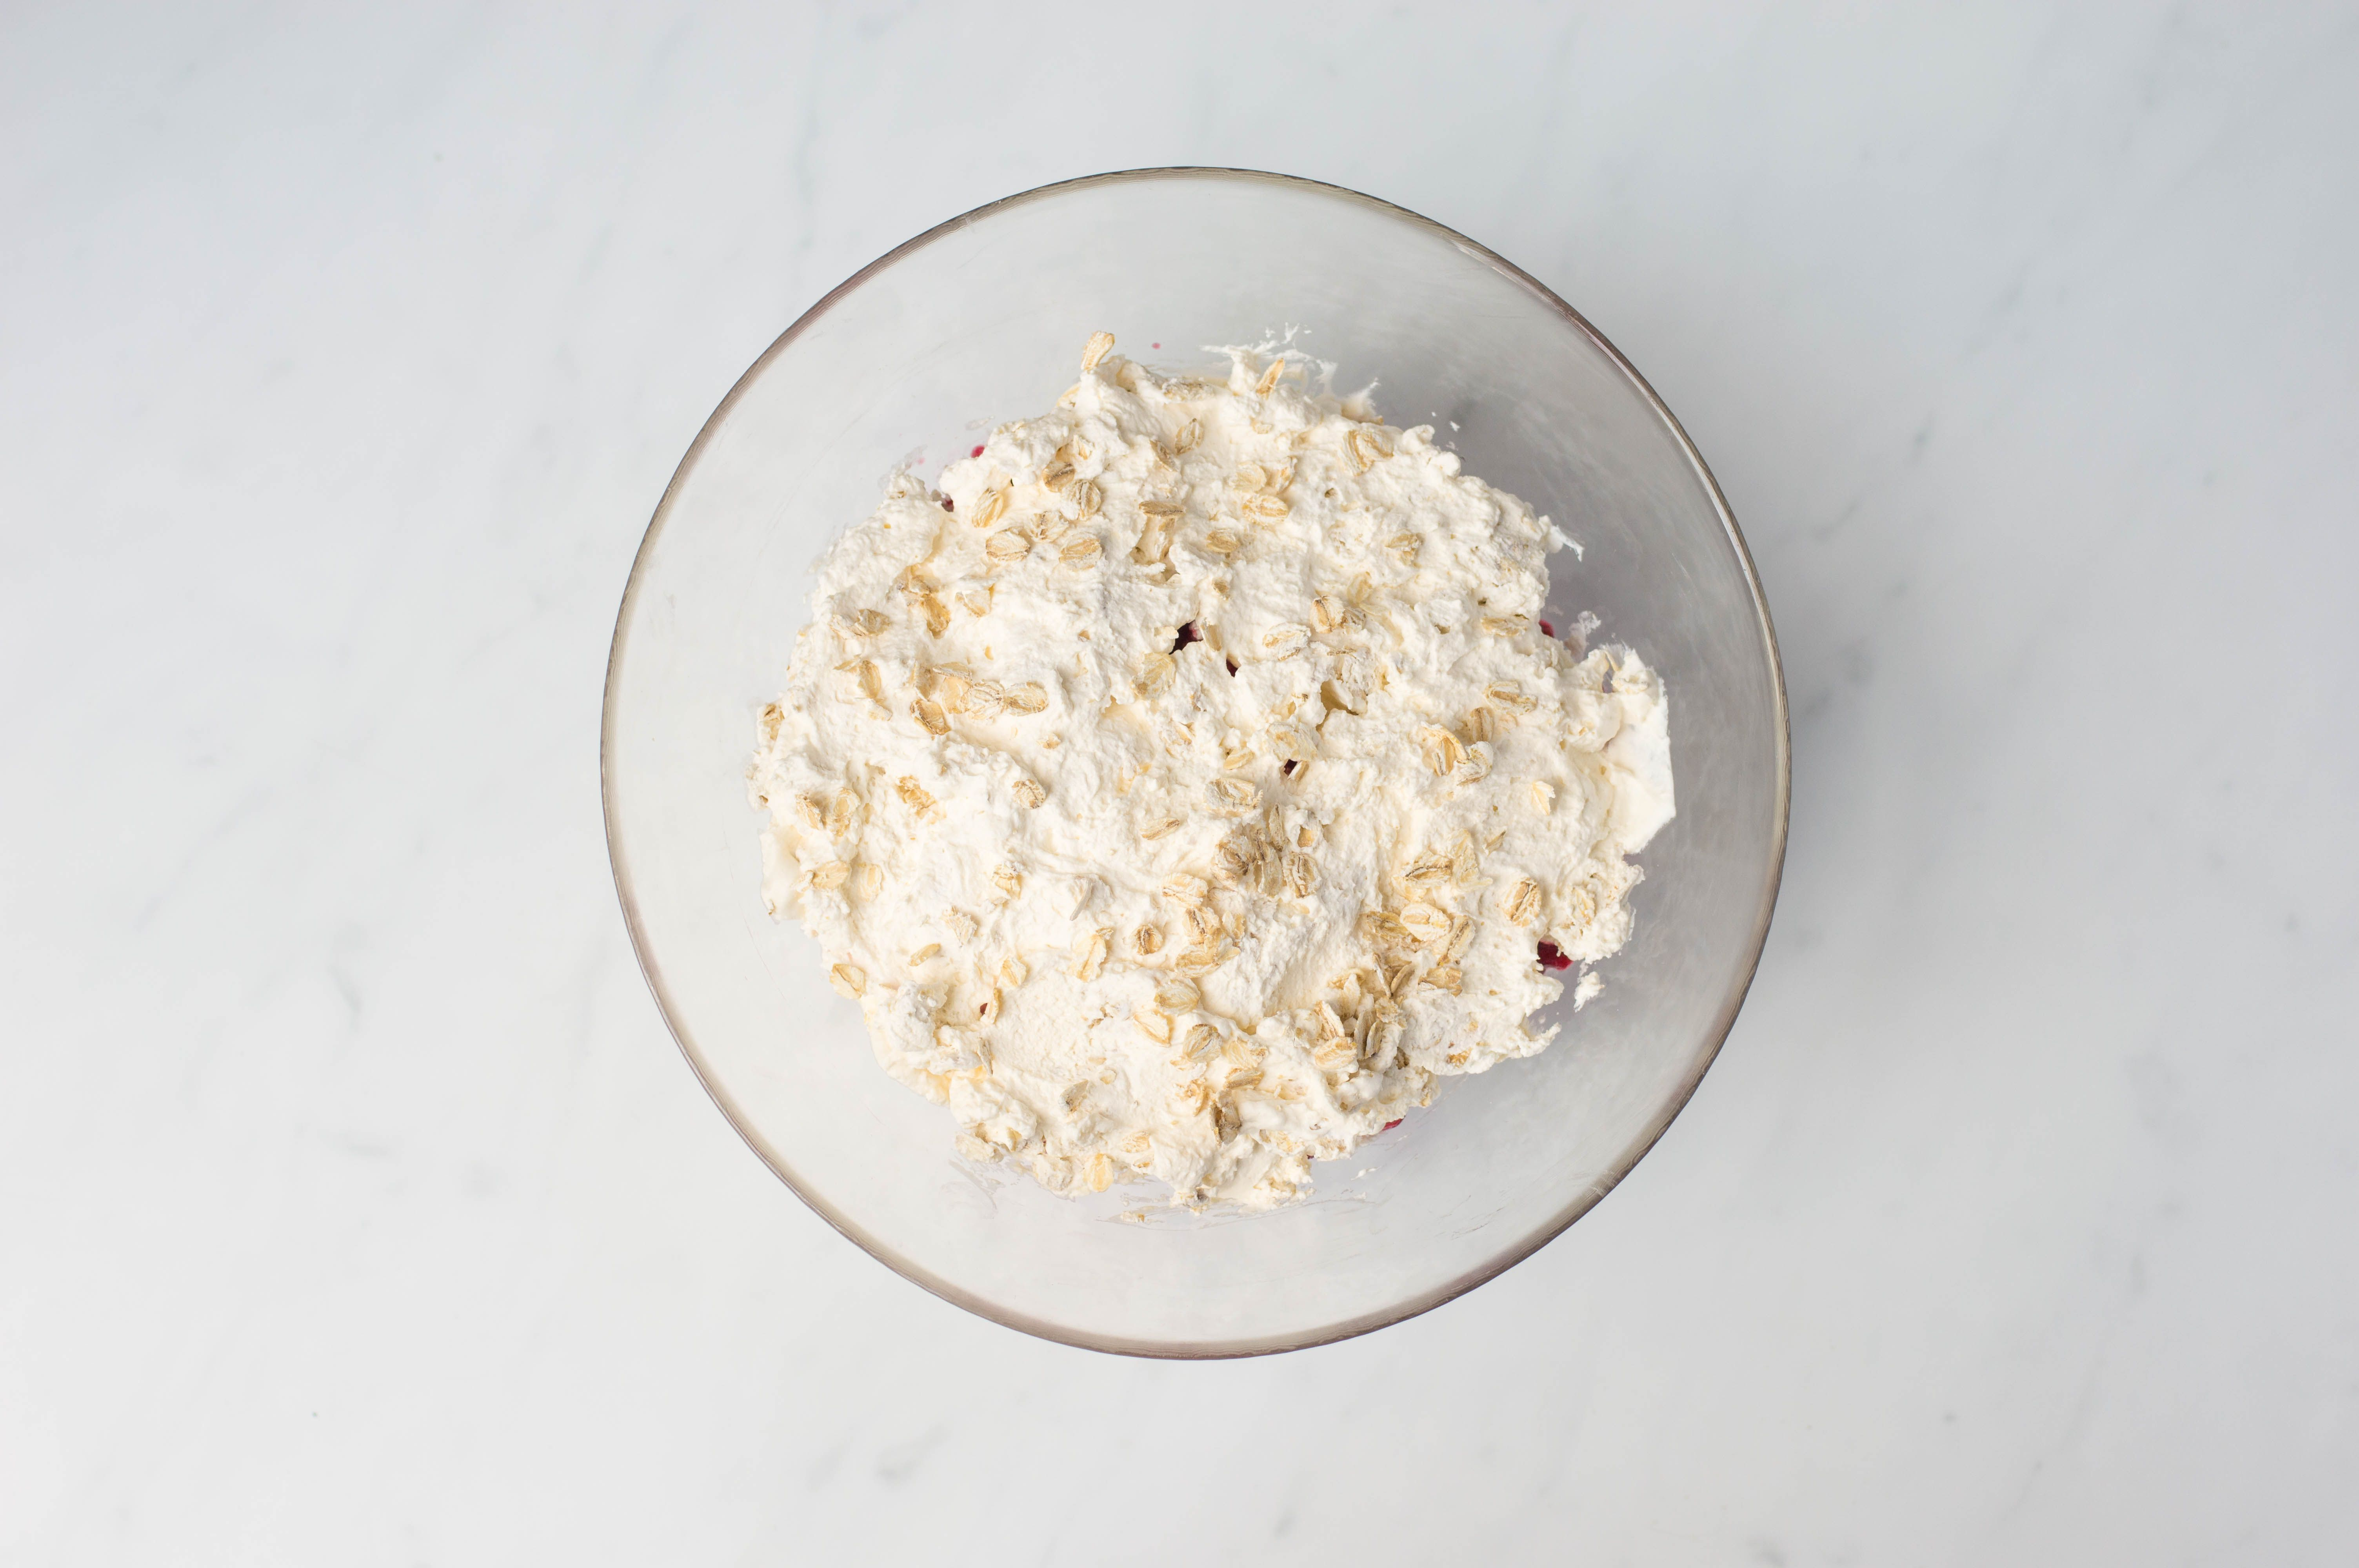 Cream and oatmeal mixture in bowl